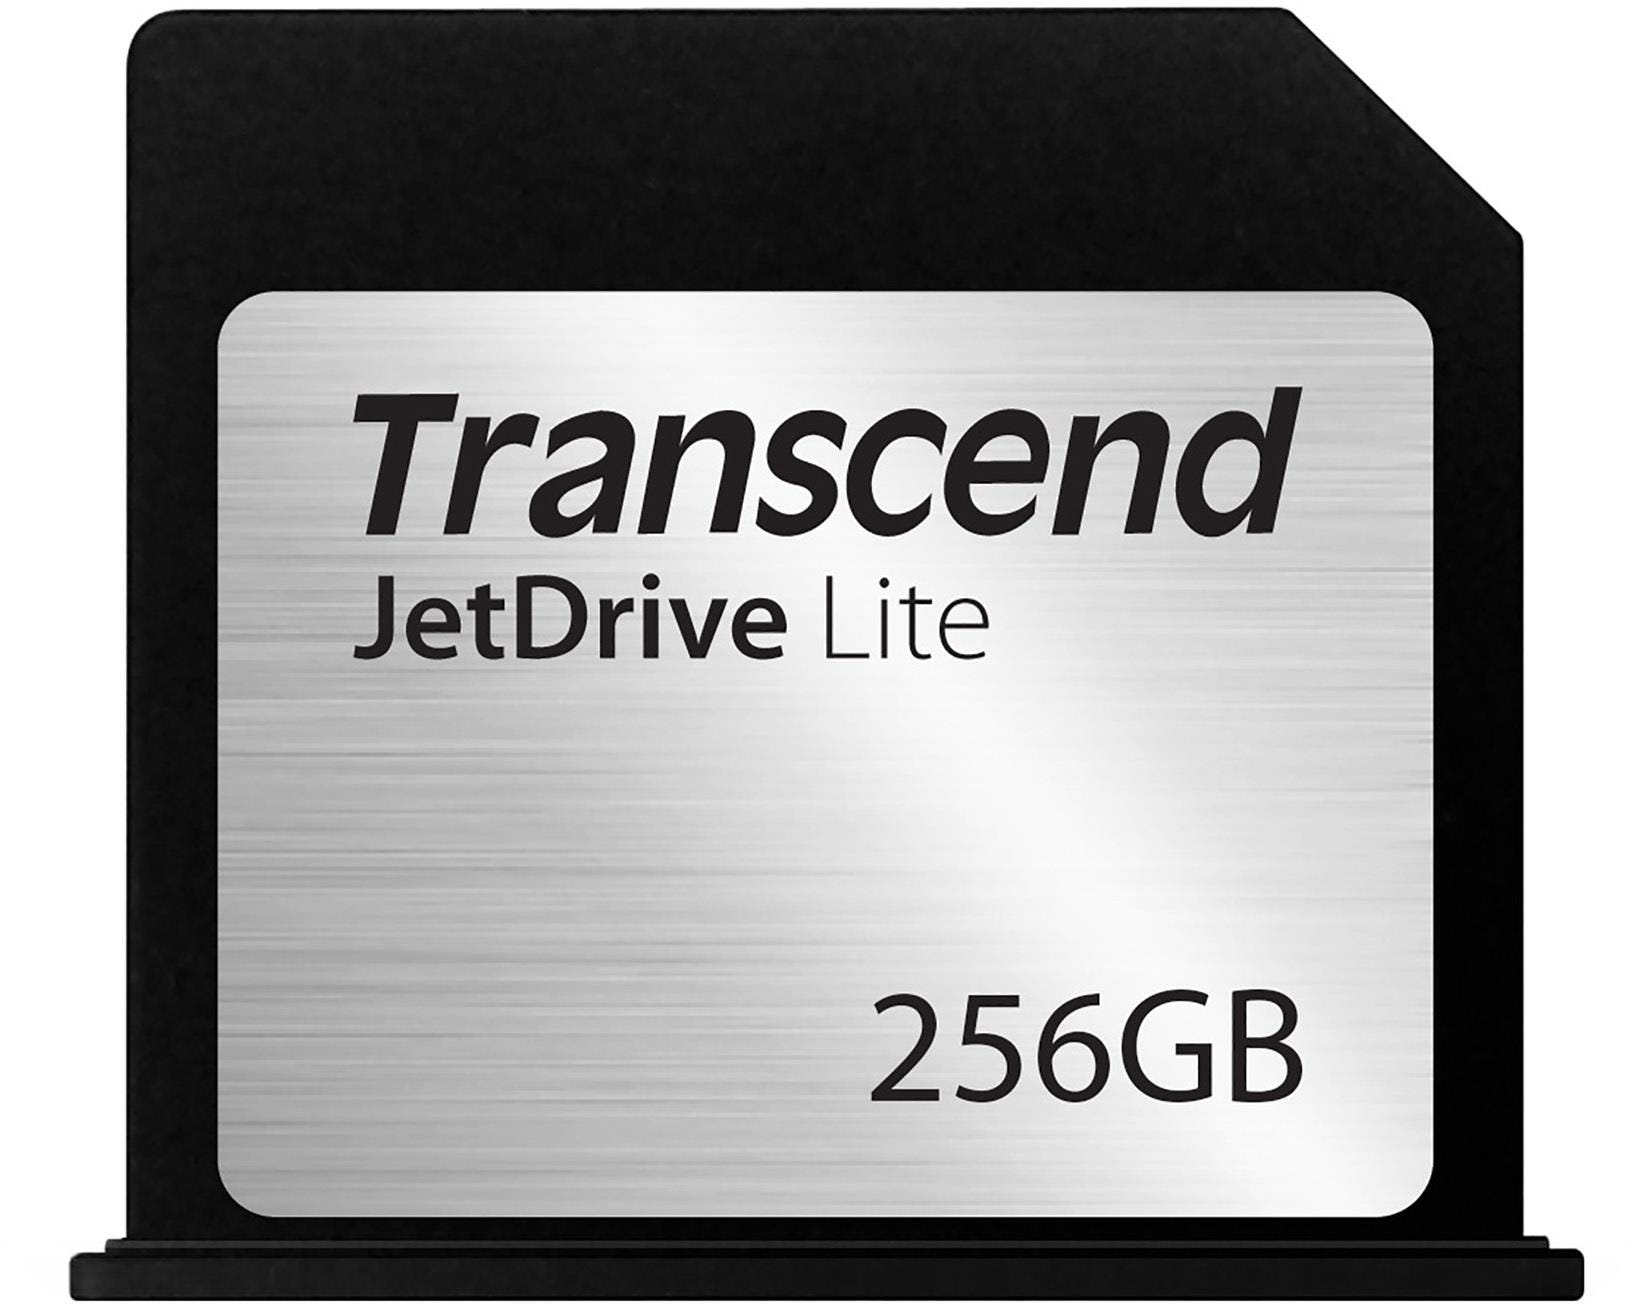 Transcend 256GB JetDrive Lite 130 Storage Expansion Card for iOS Apple Devices